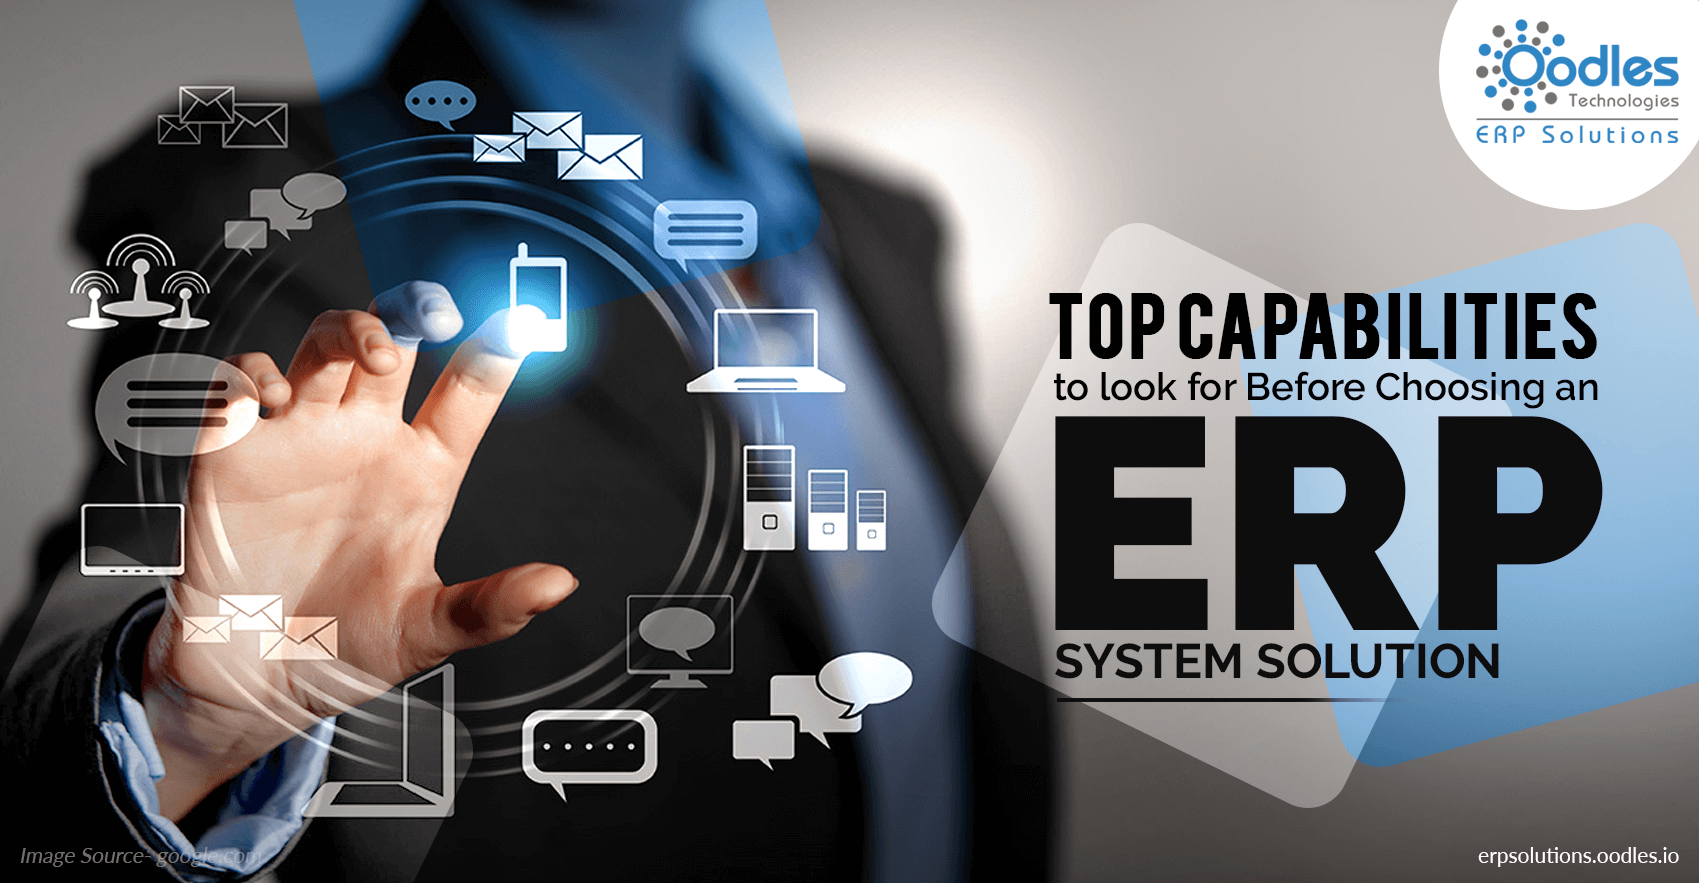 What factors to consider while selecting an ERP system solution